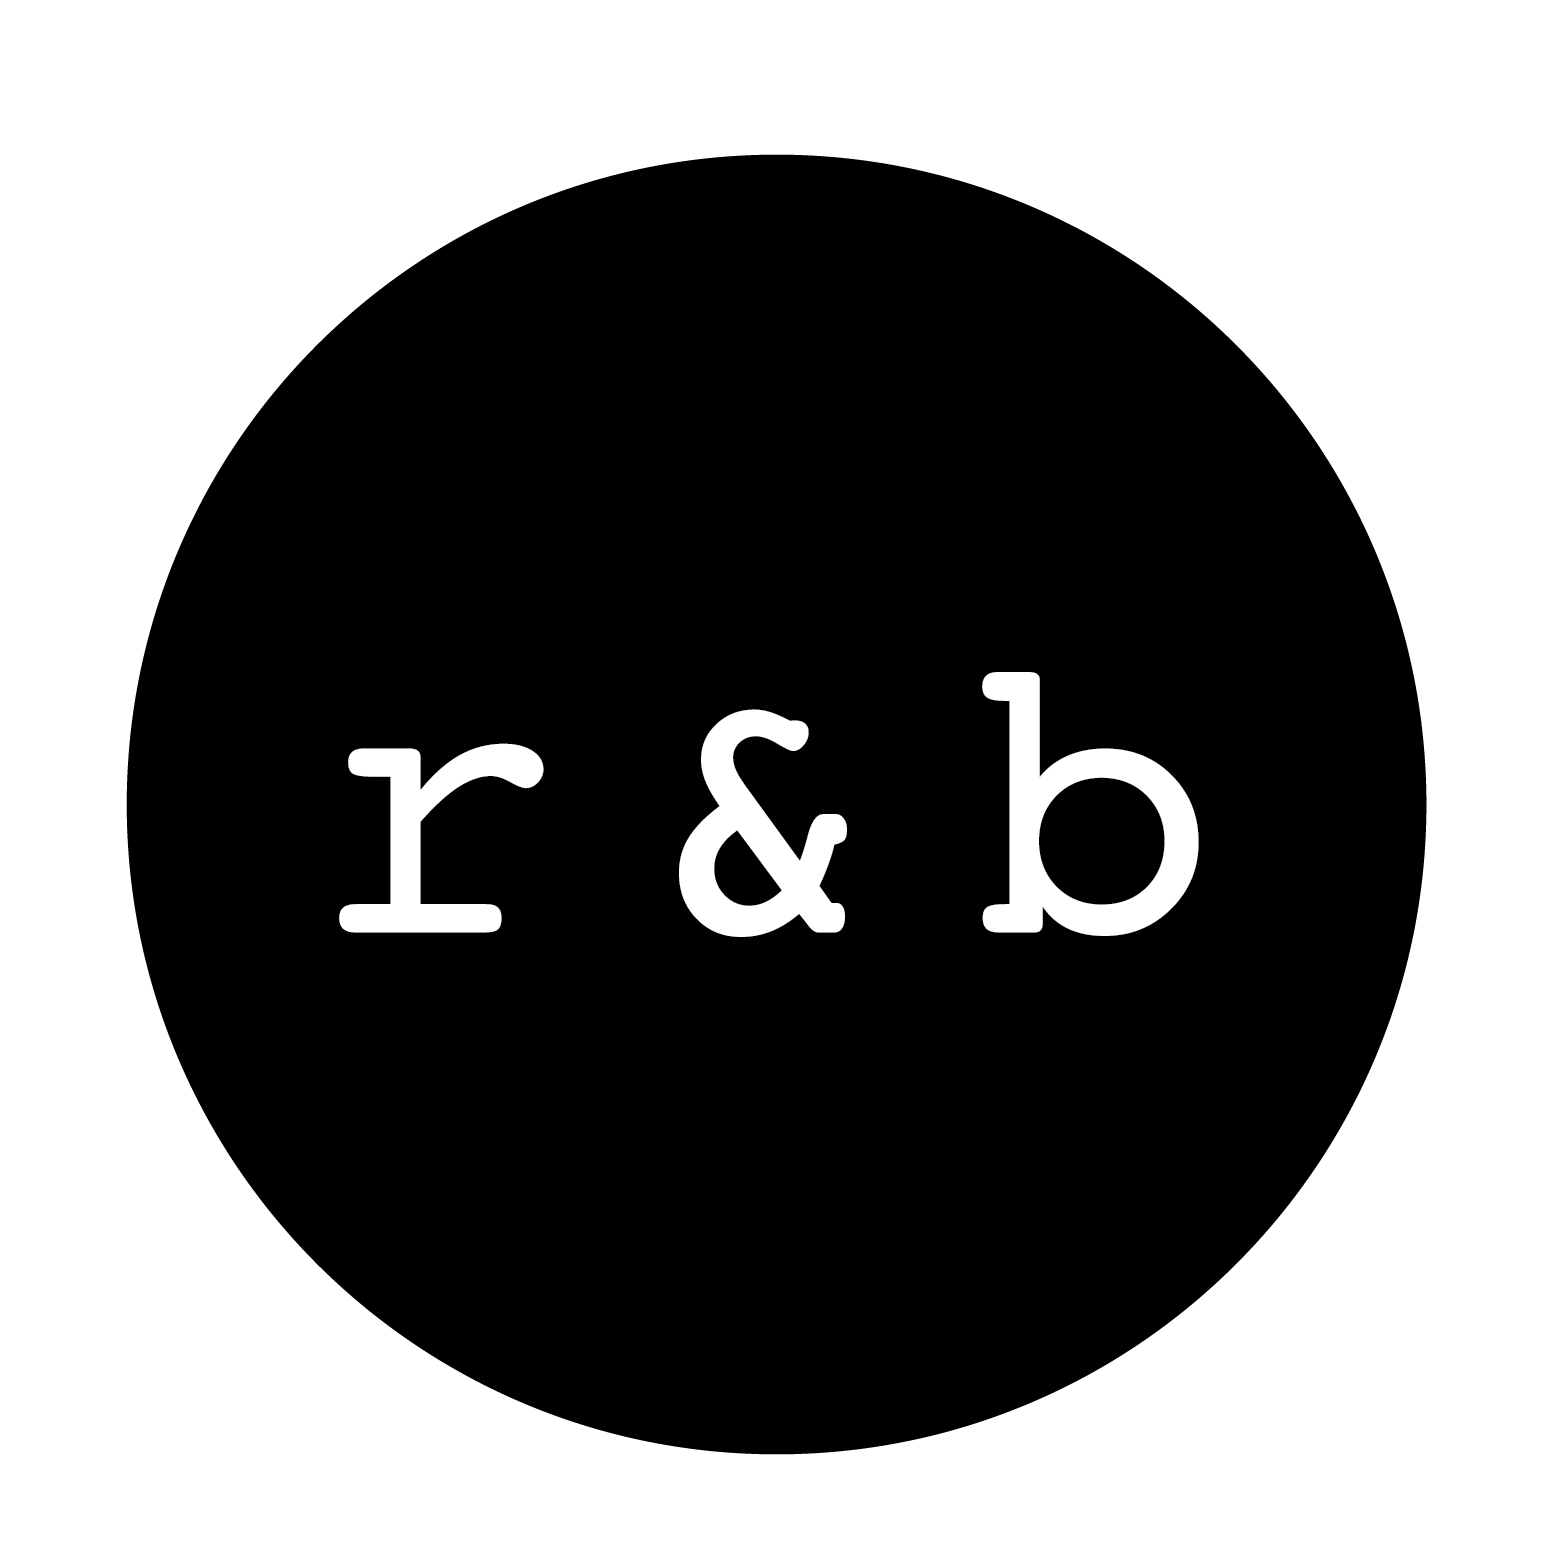 White rated r png. B